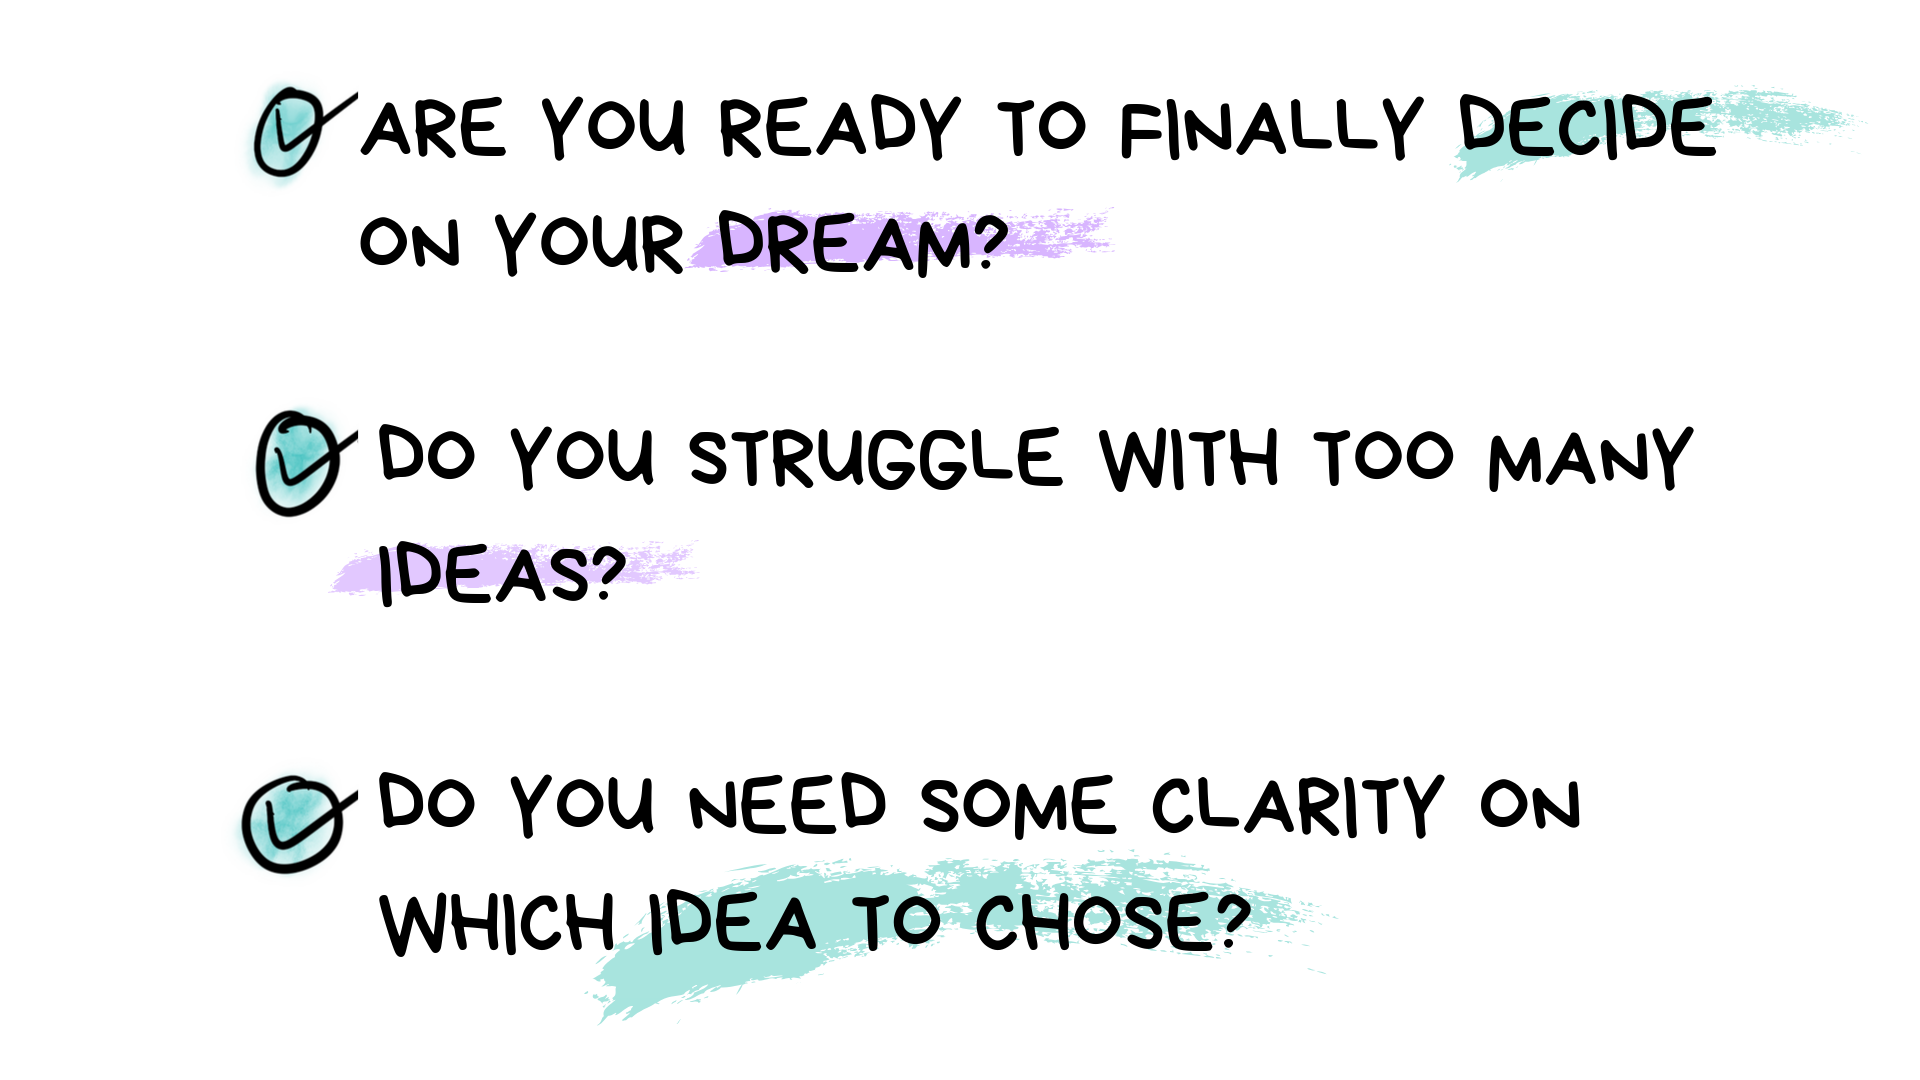 Are You Ready to Finally Decide on Your Dream?